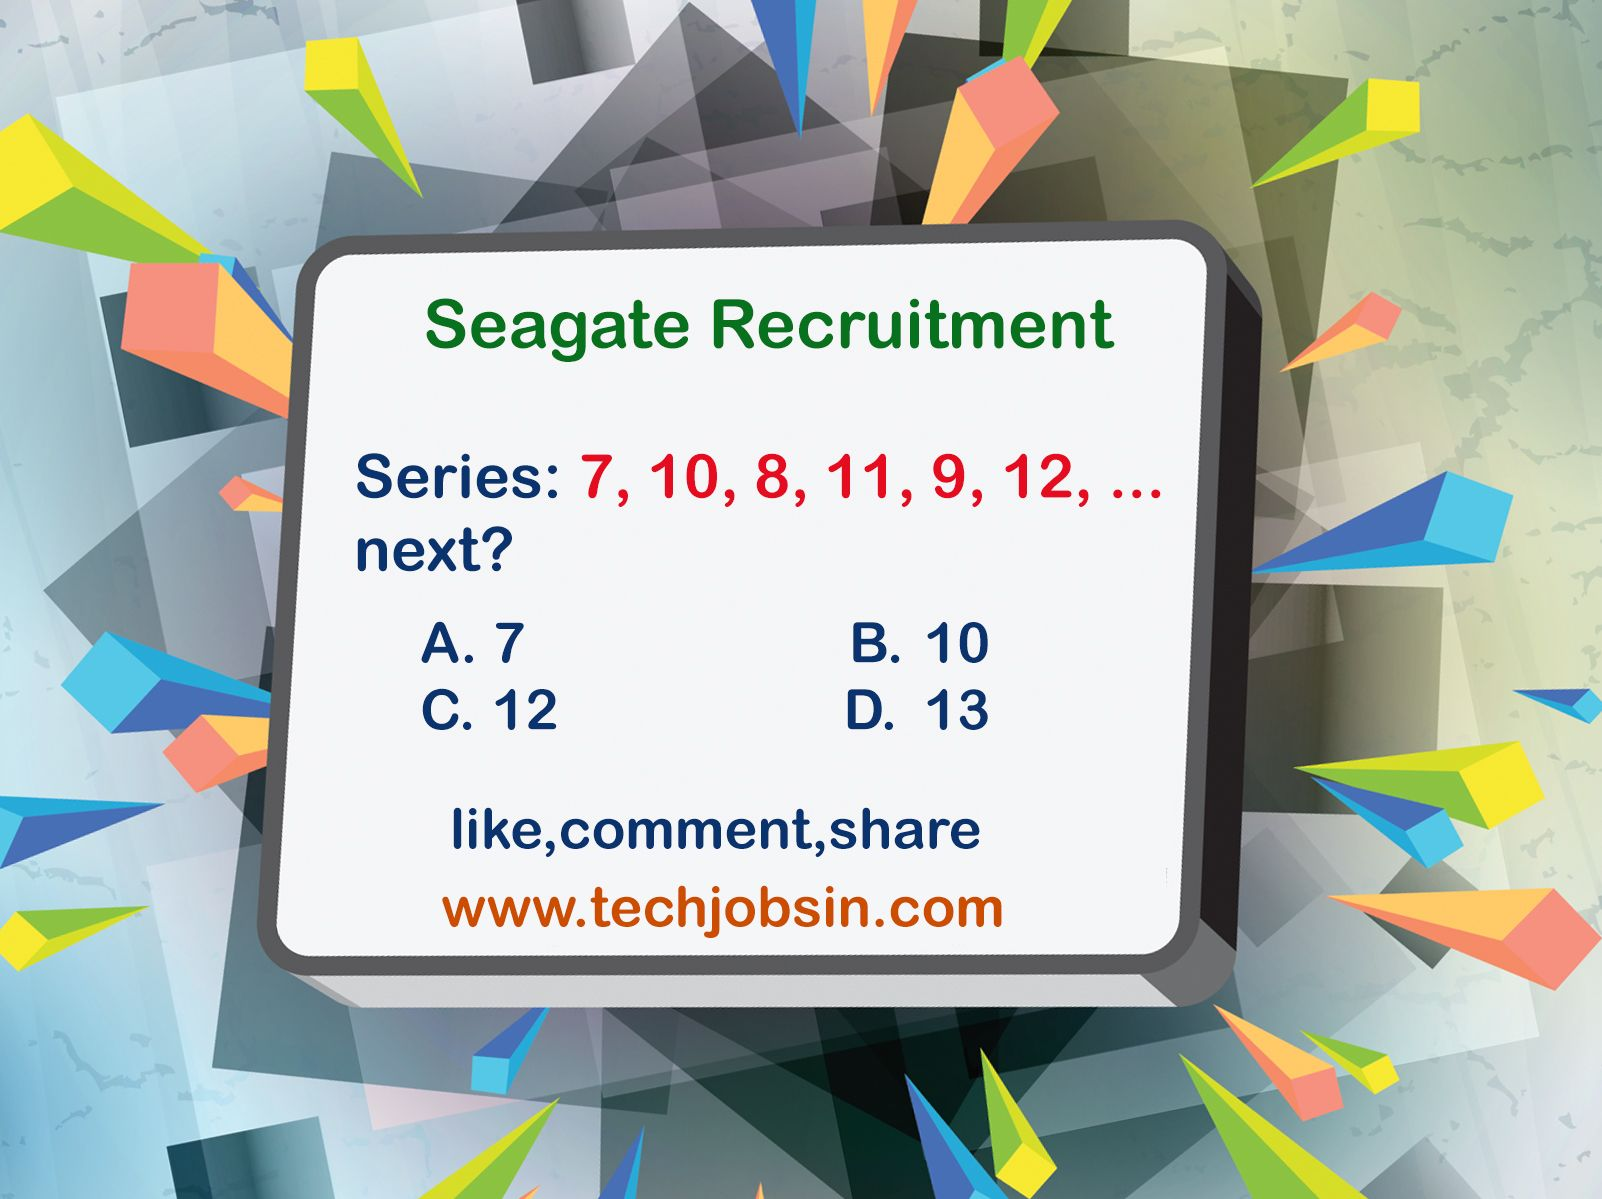 Seagate Recruitment For Freshers Hardware Engineer Entry Level Http Www Techjobsin Com 2015 12 Seagte Recruitment Engineering Jobs Job Pictures Recruitment